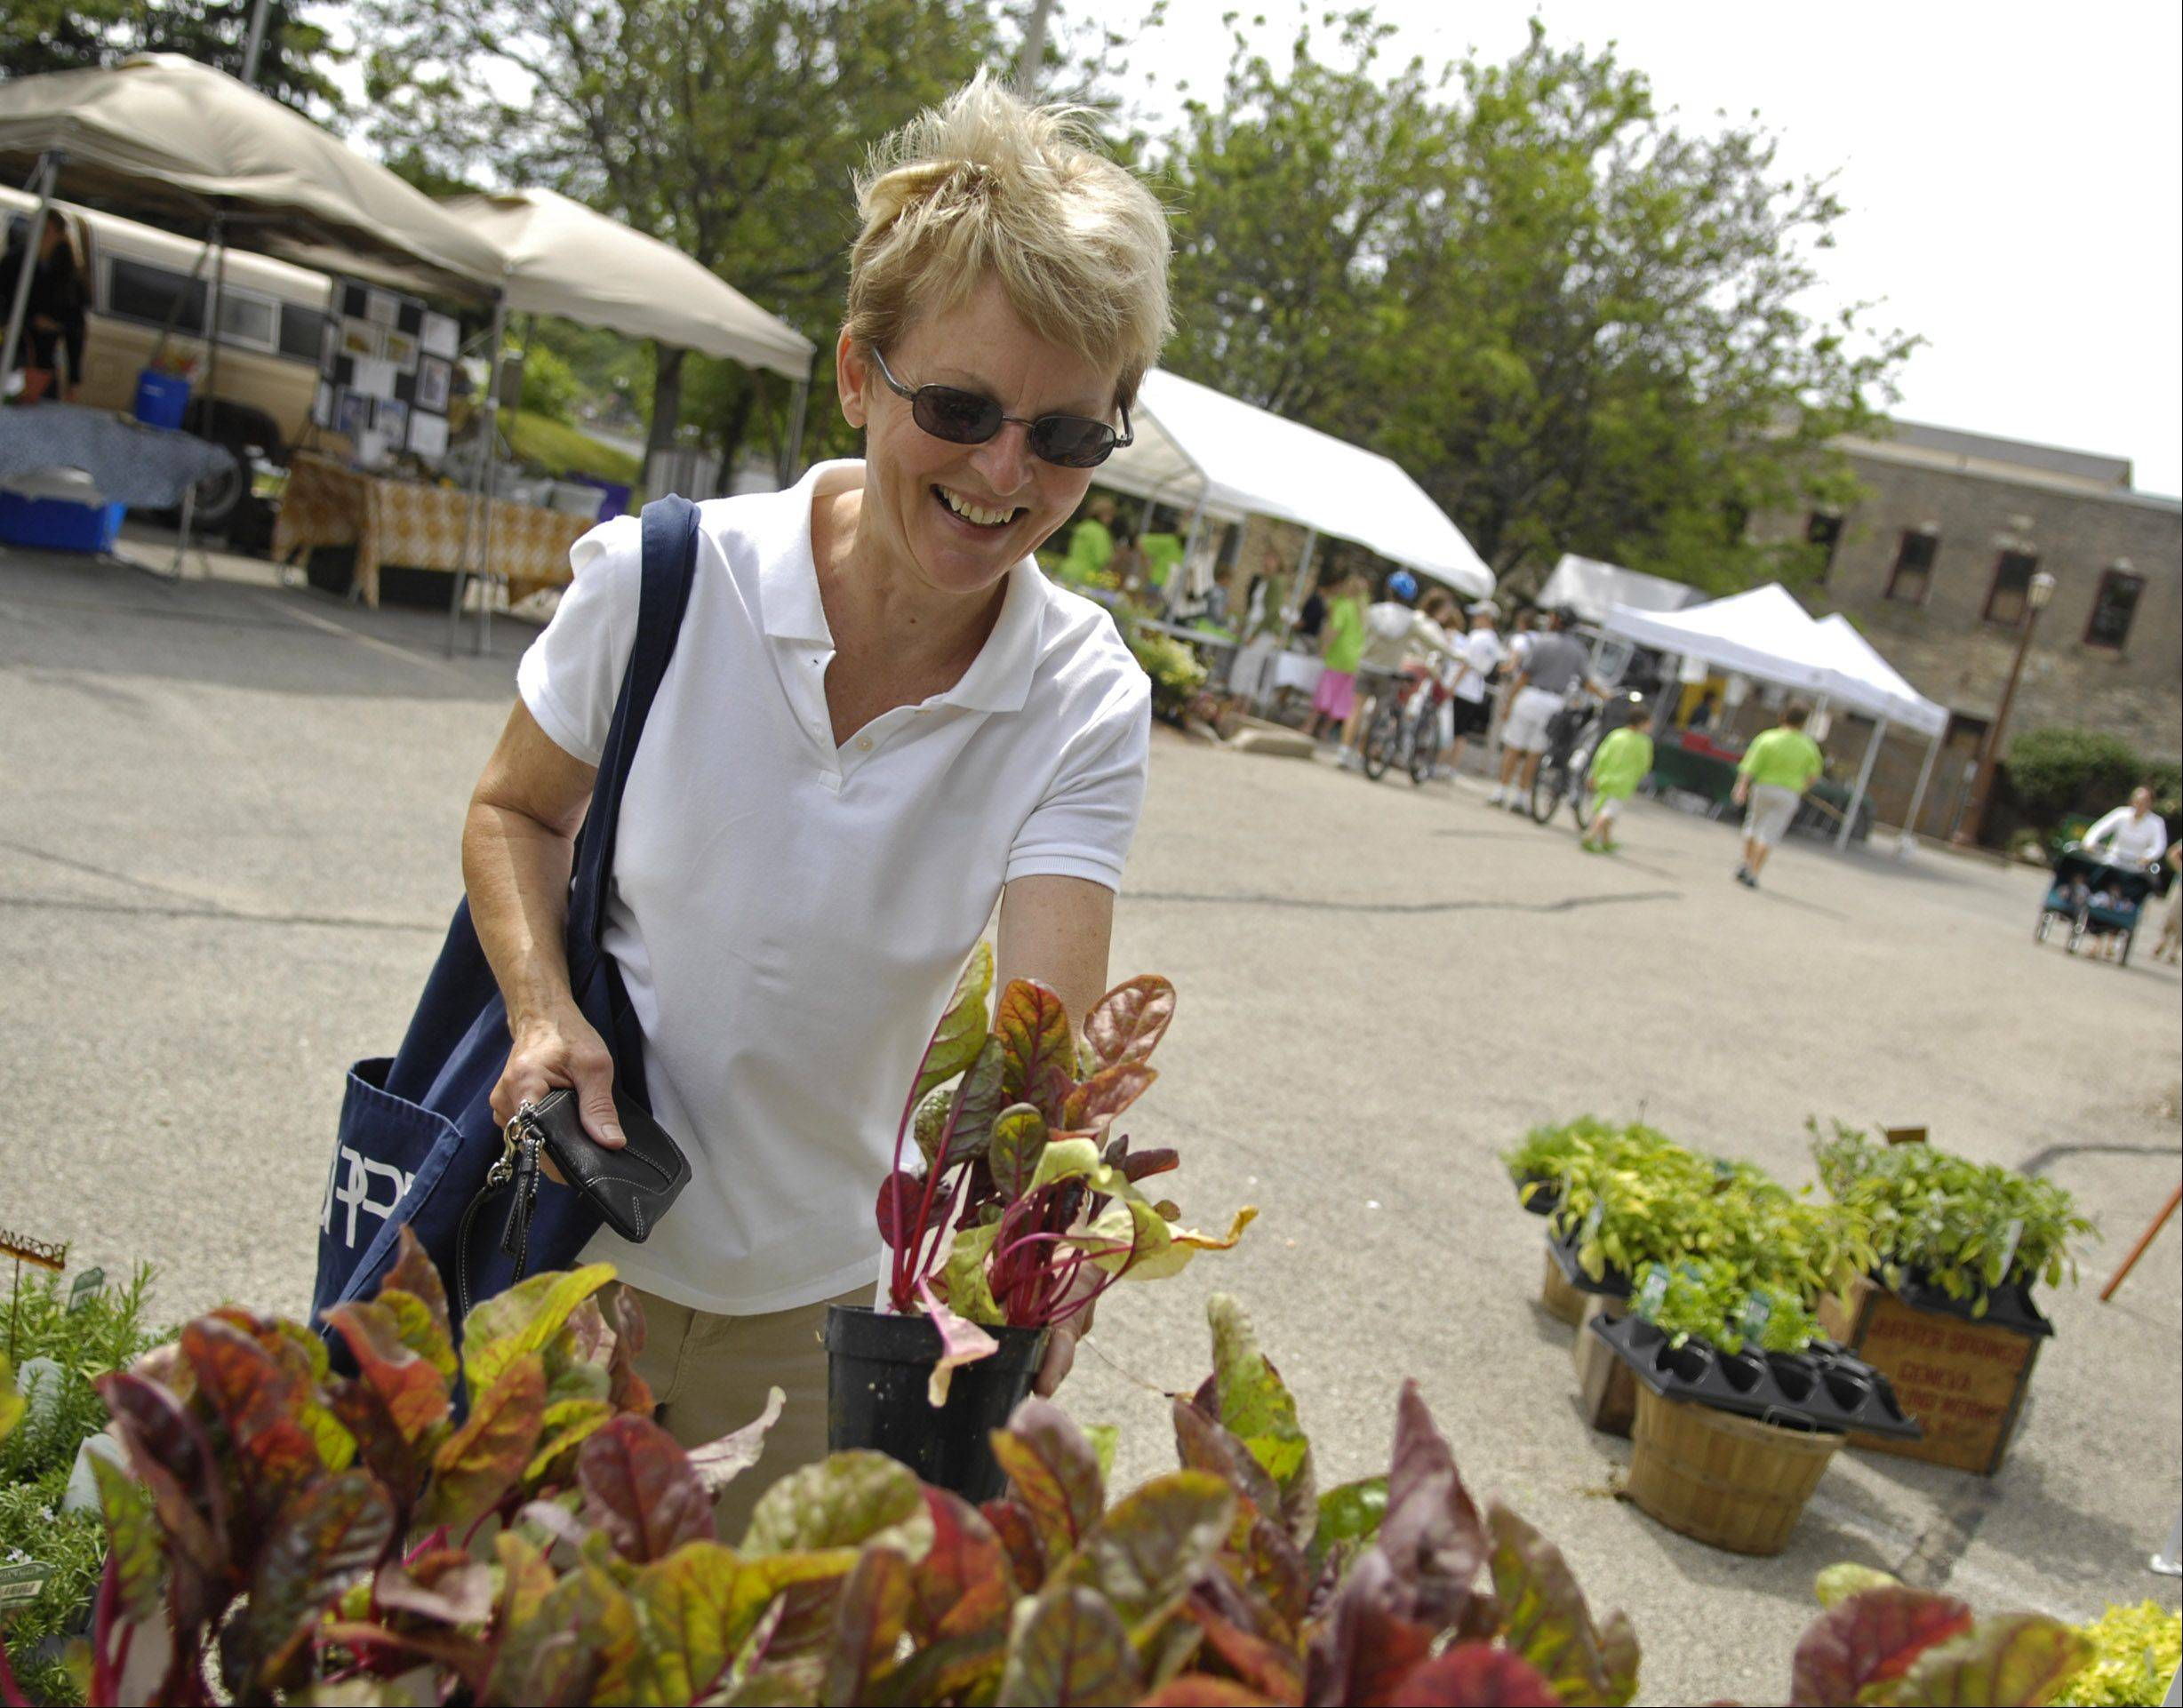 A shopper picks out a Swiss chard plant at the Geneva Green Market at its former location off River Lane.